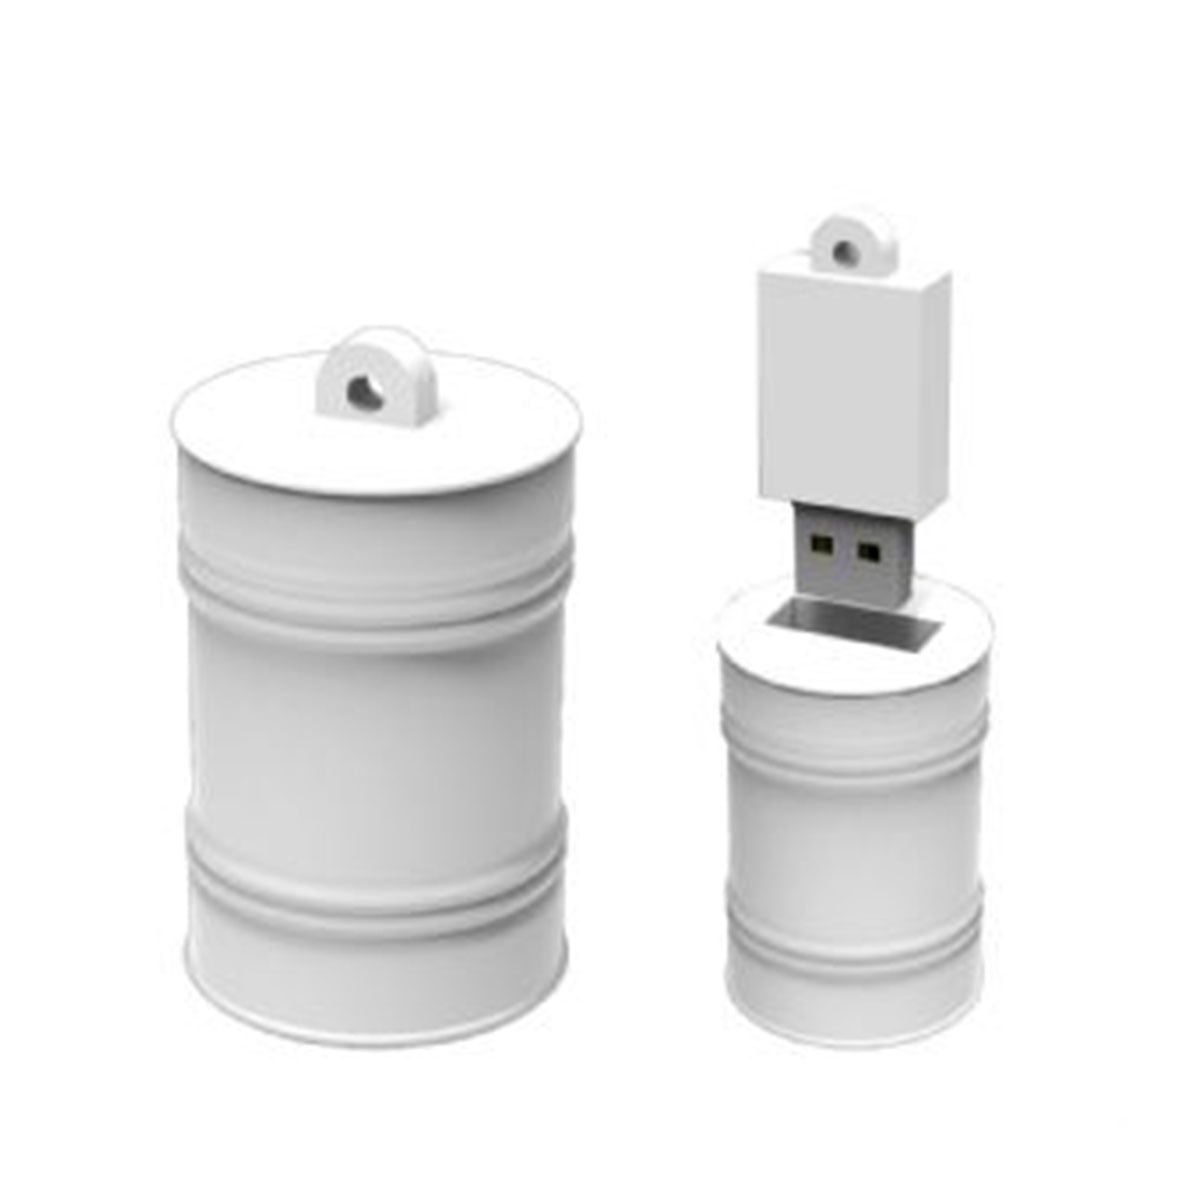 Oil Drum Large PVC Flash Drive-You can change up to 2 of the base PVC colours and print your logo in 1-2 colours in 1 position.